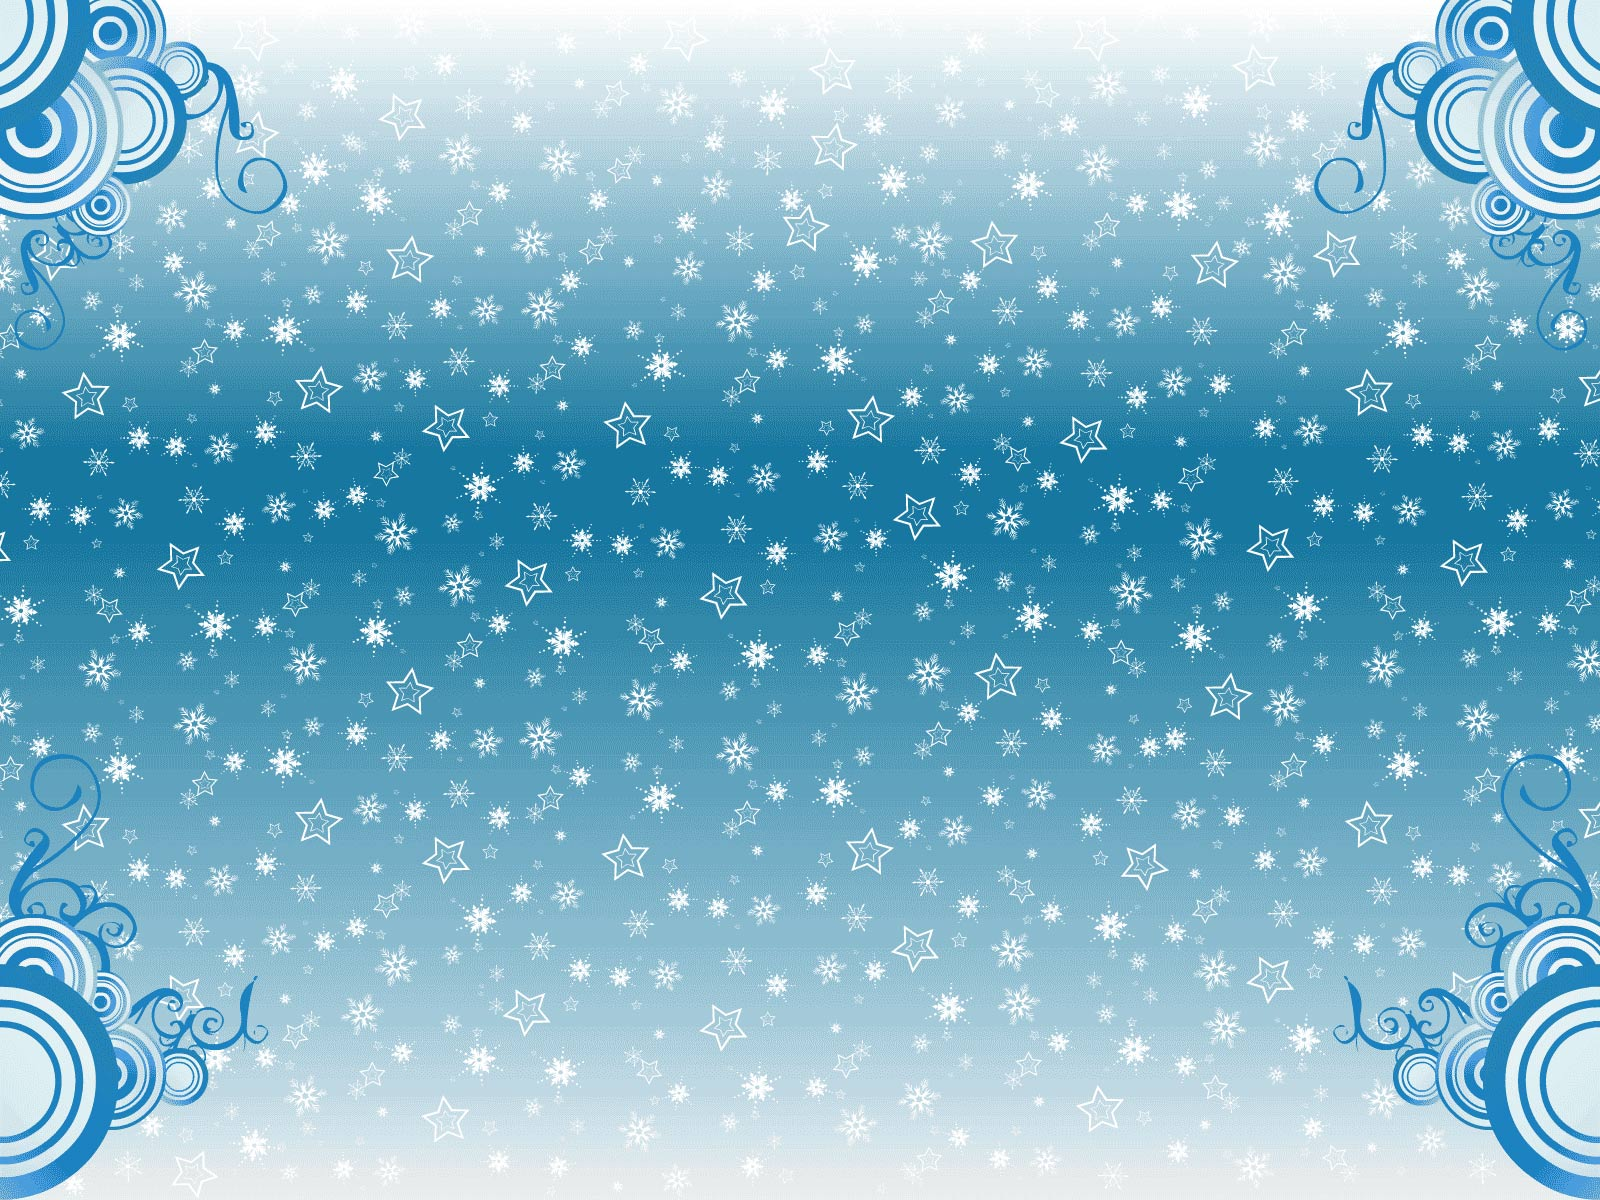 winter Desktop Wallpaper High Quality WallpapersWallpaper Desktop 1600x1200